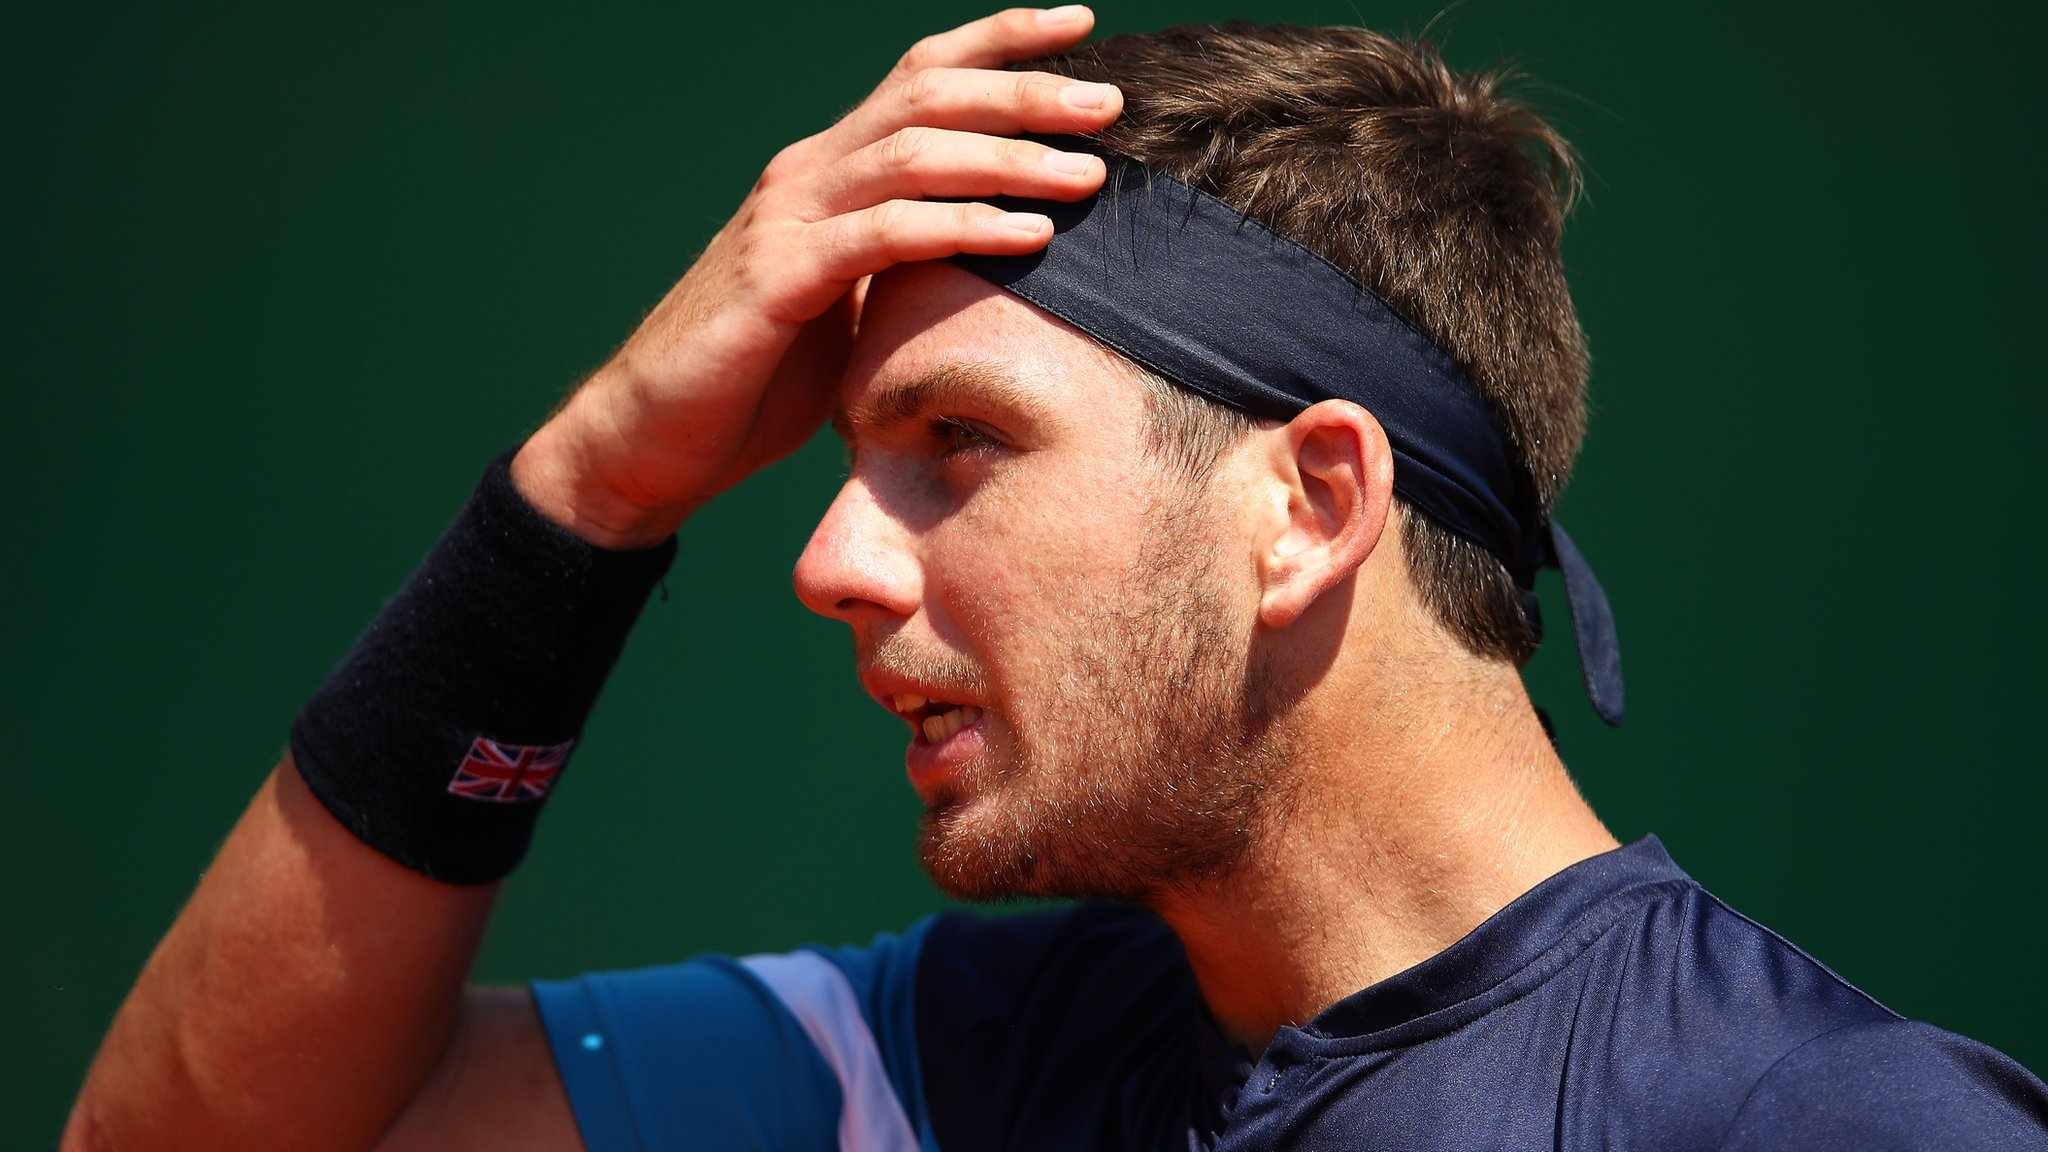 Barcelona Open: British number two Cameron Norrie loses in first round